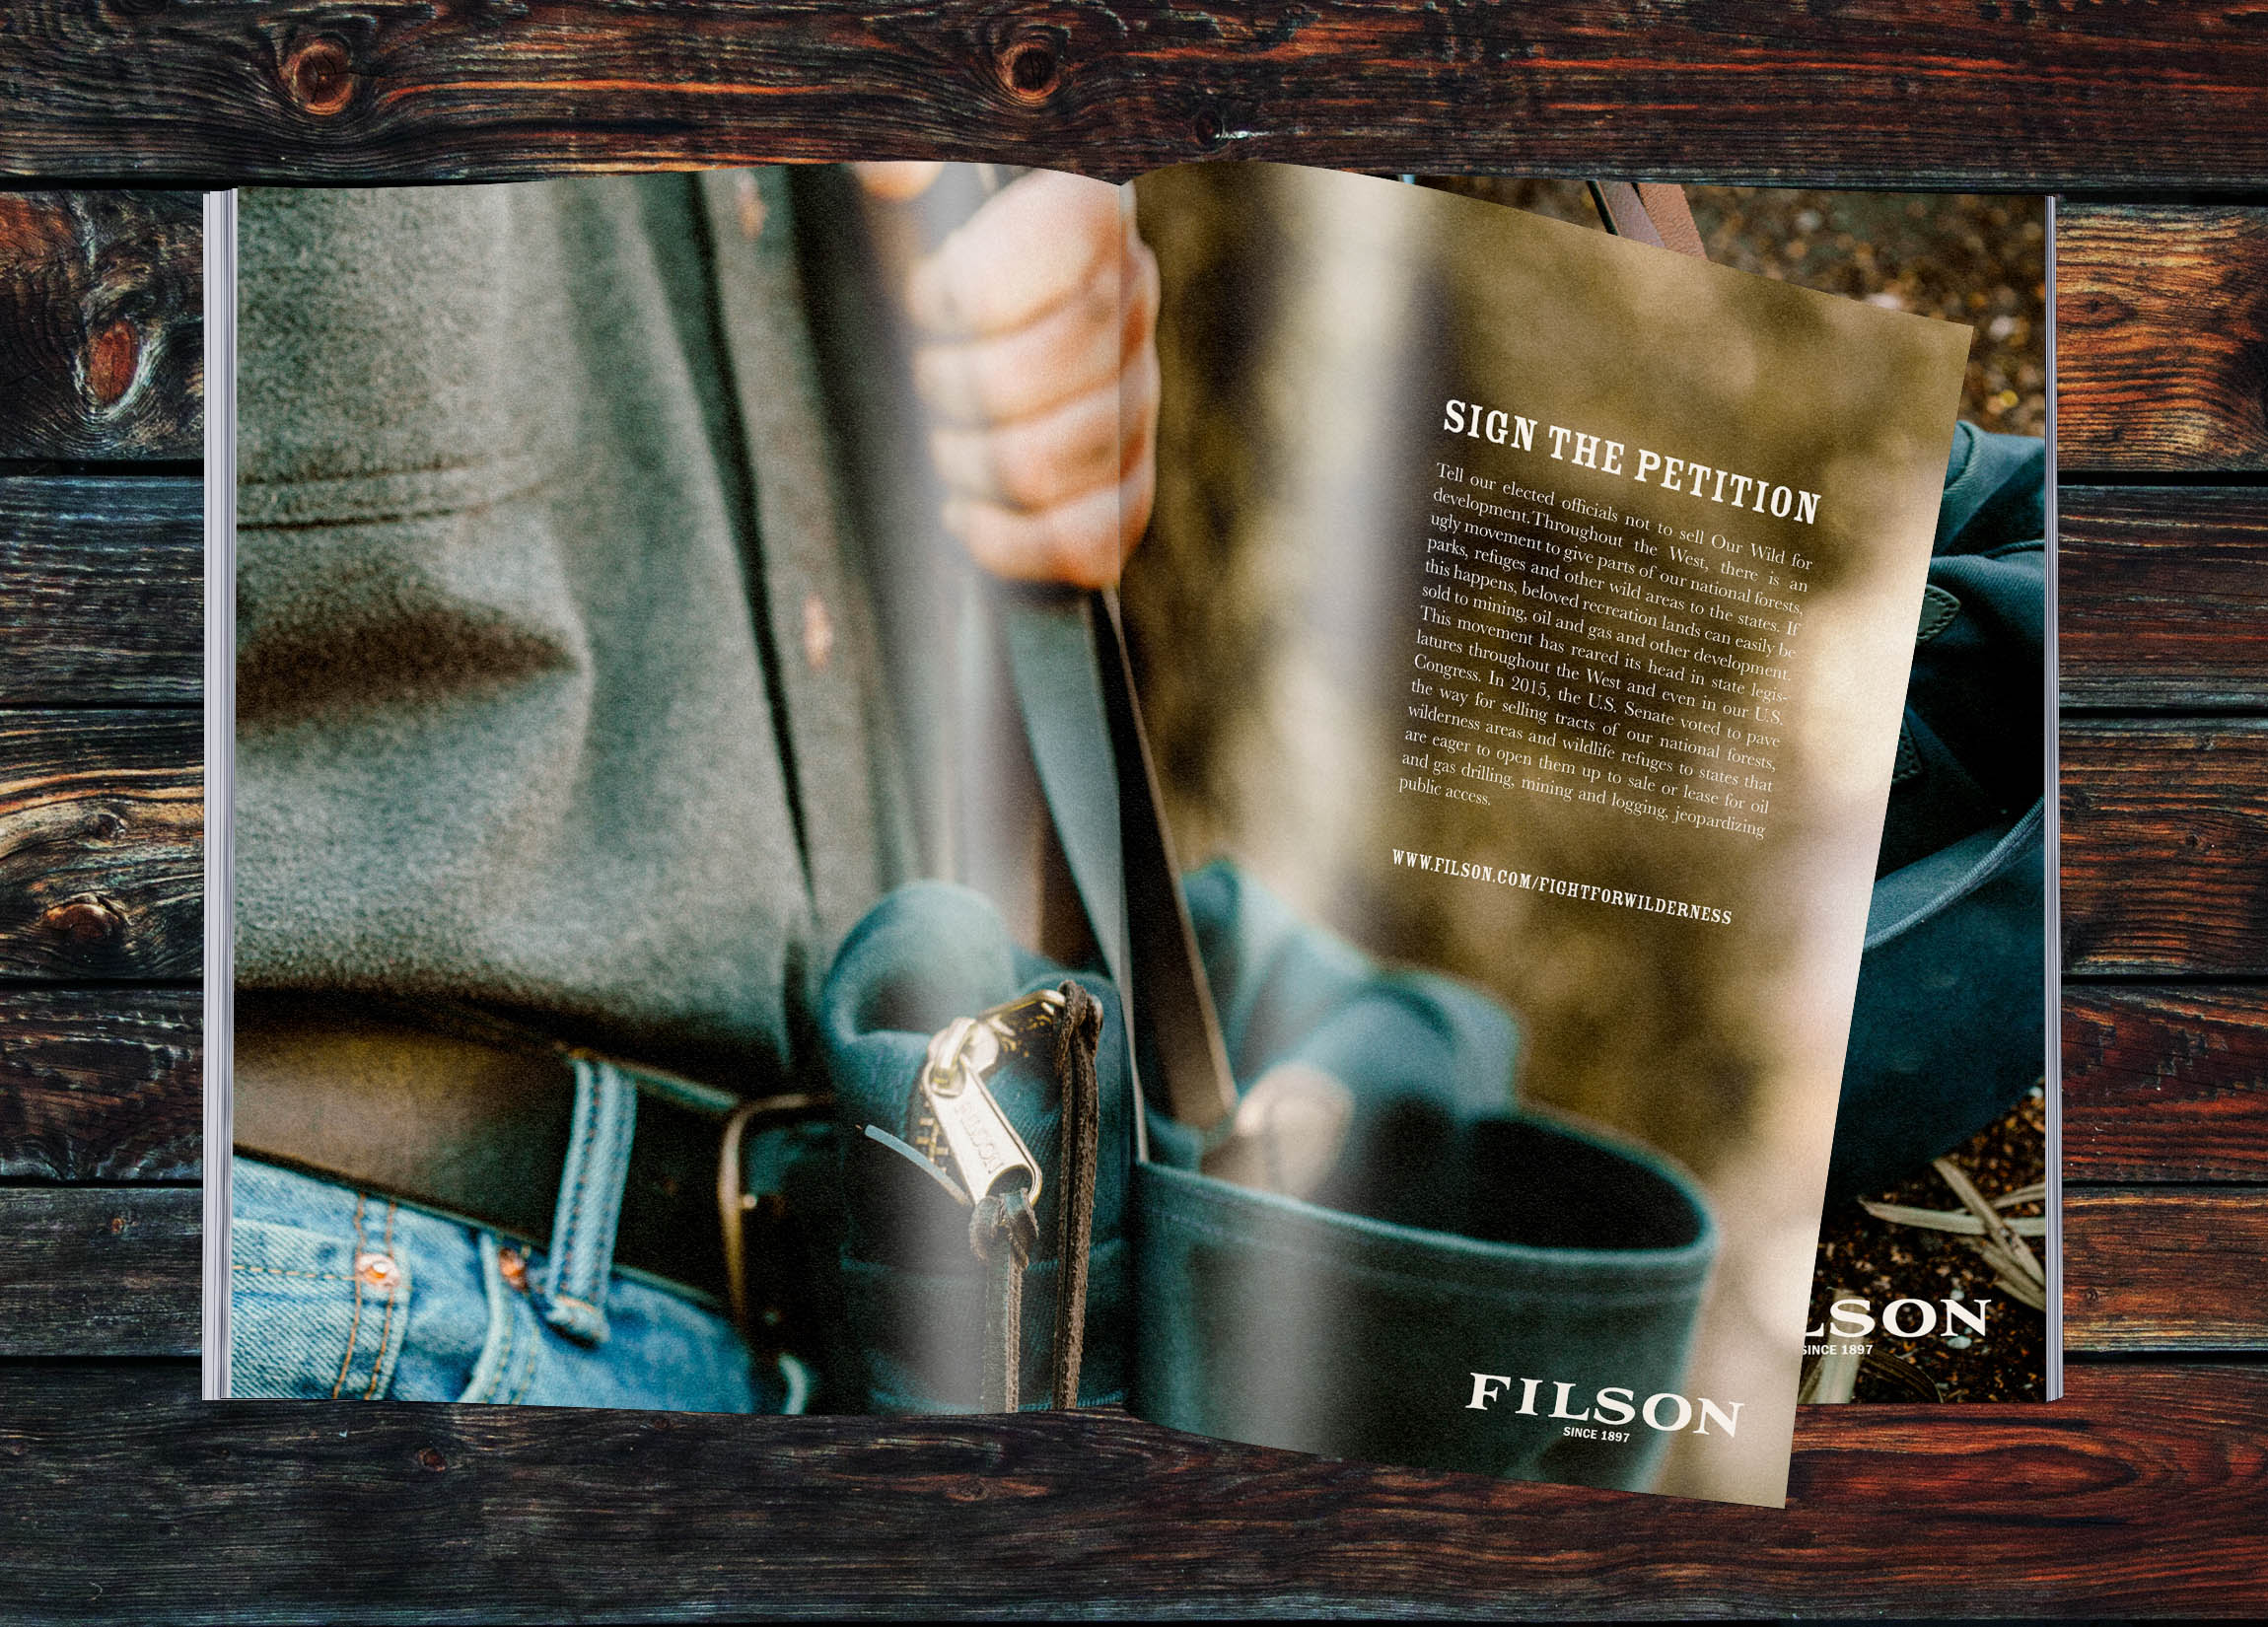 Filson Wilderness Campaign -